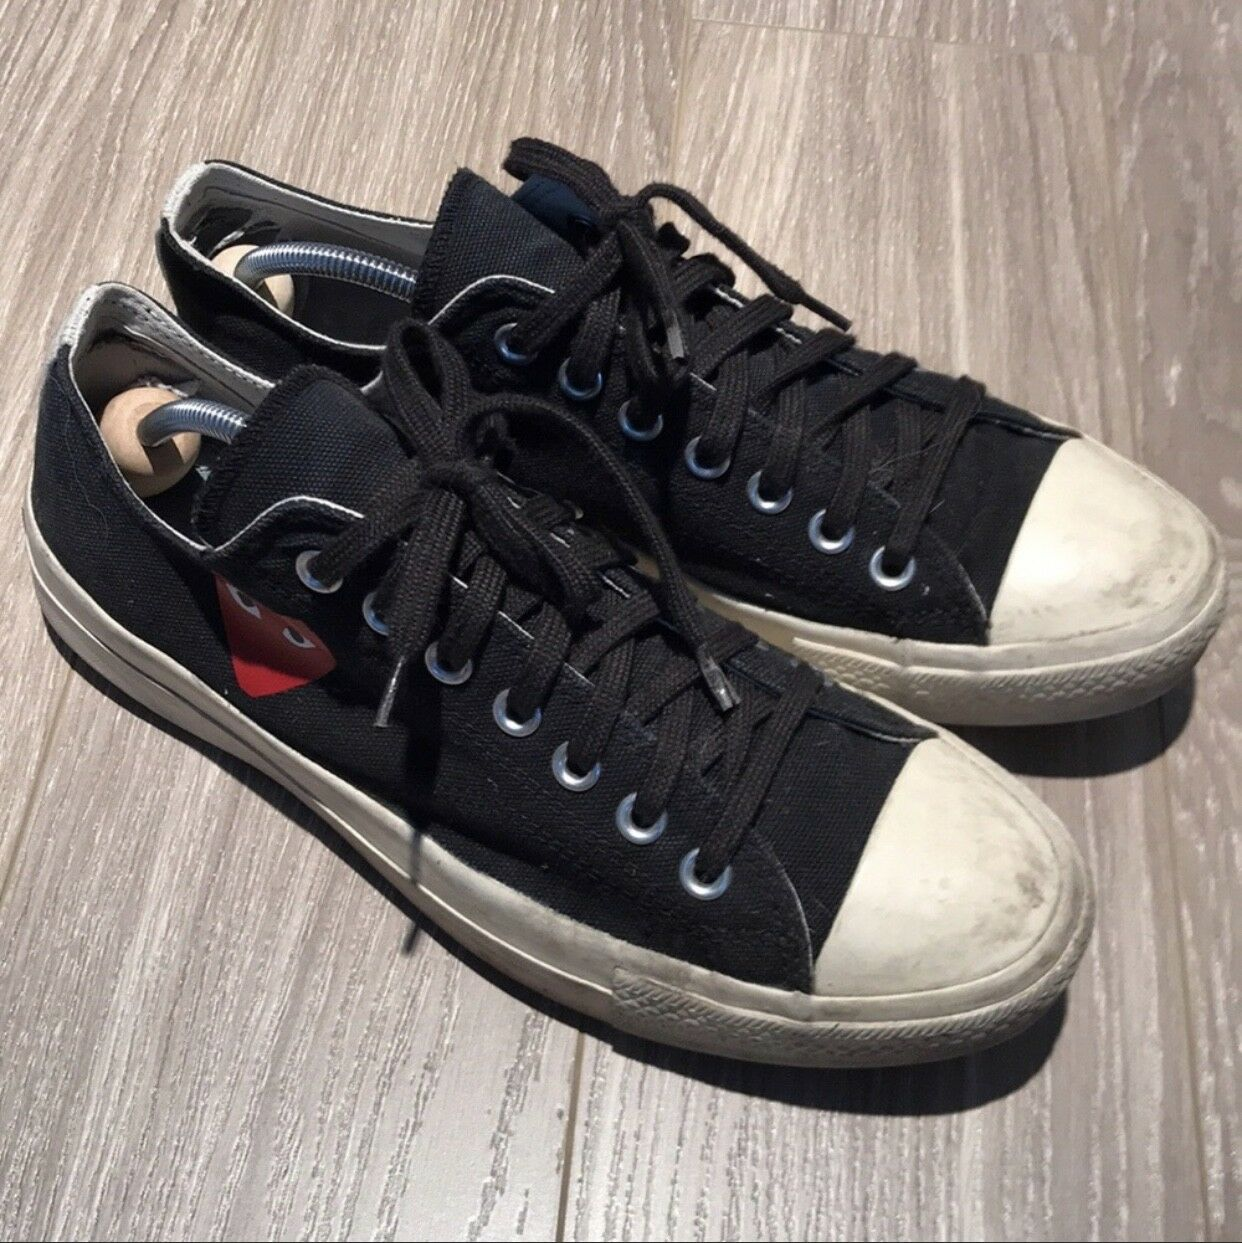 69396cdd9aa5 Converse Comme des Garcons CDG Play Black High Top Top Top 9 Men s 11  Women s